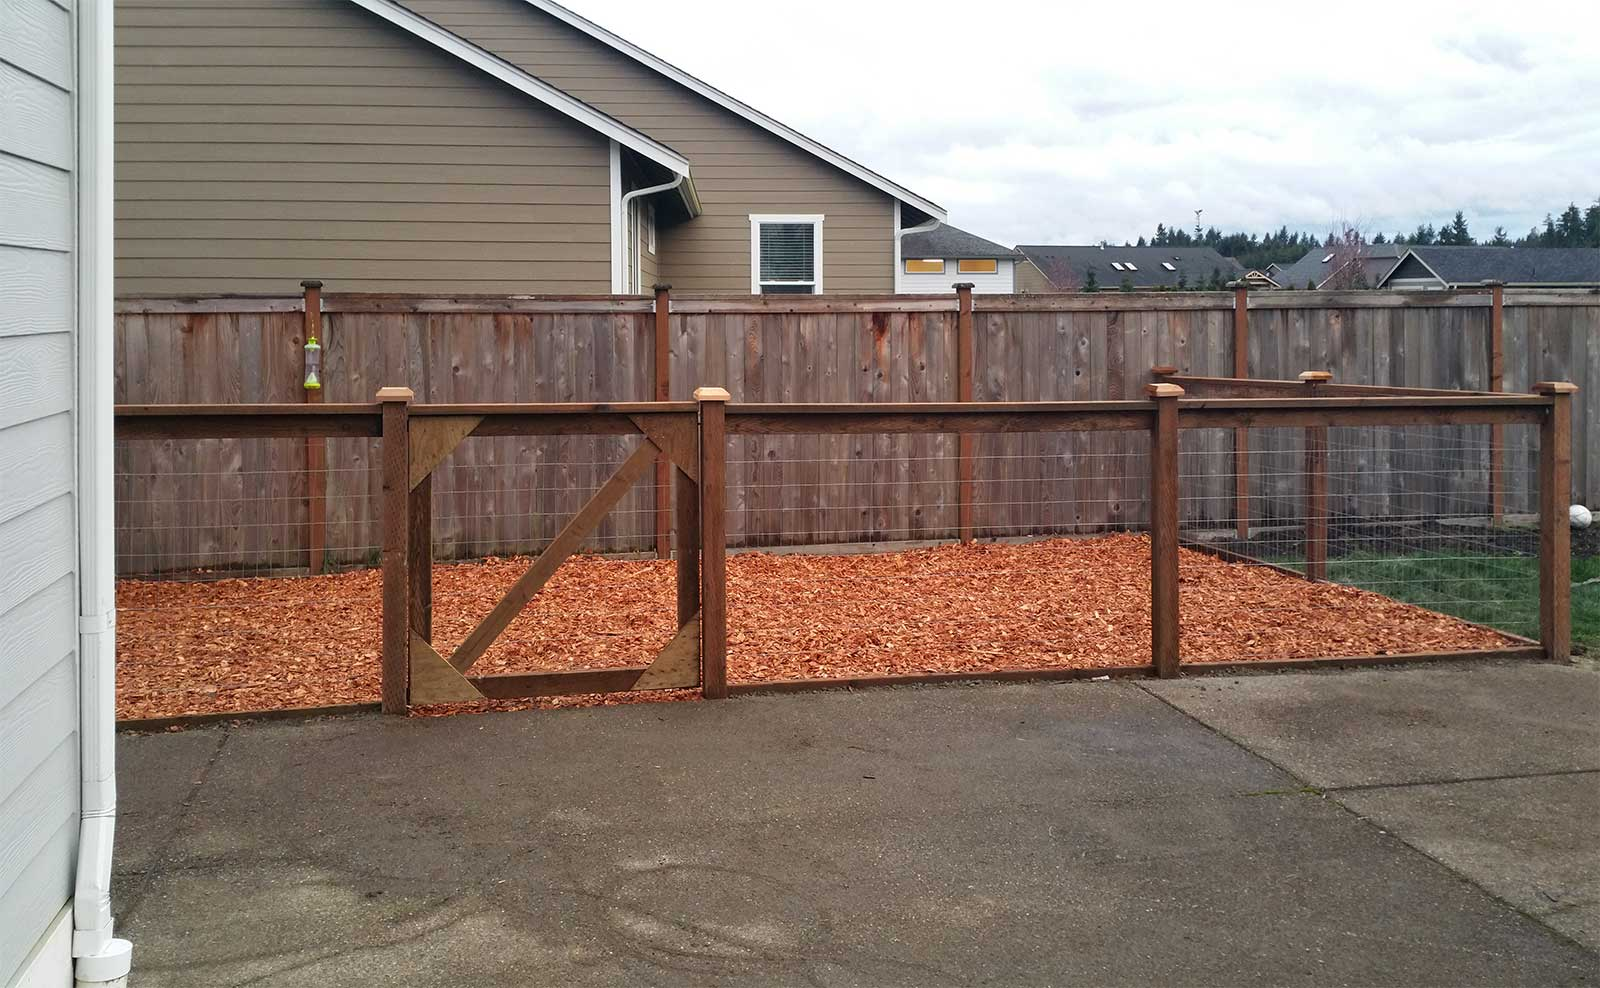 East olympia kennel with cedar chips ajb landscaping fence for Cedar shavings for dog kennels